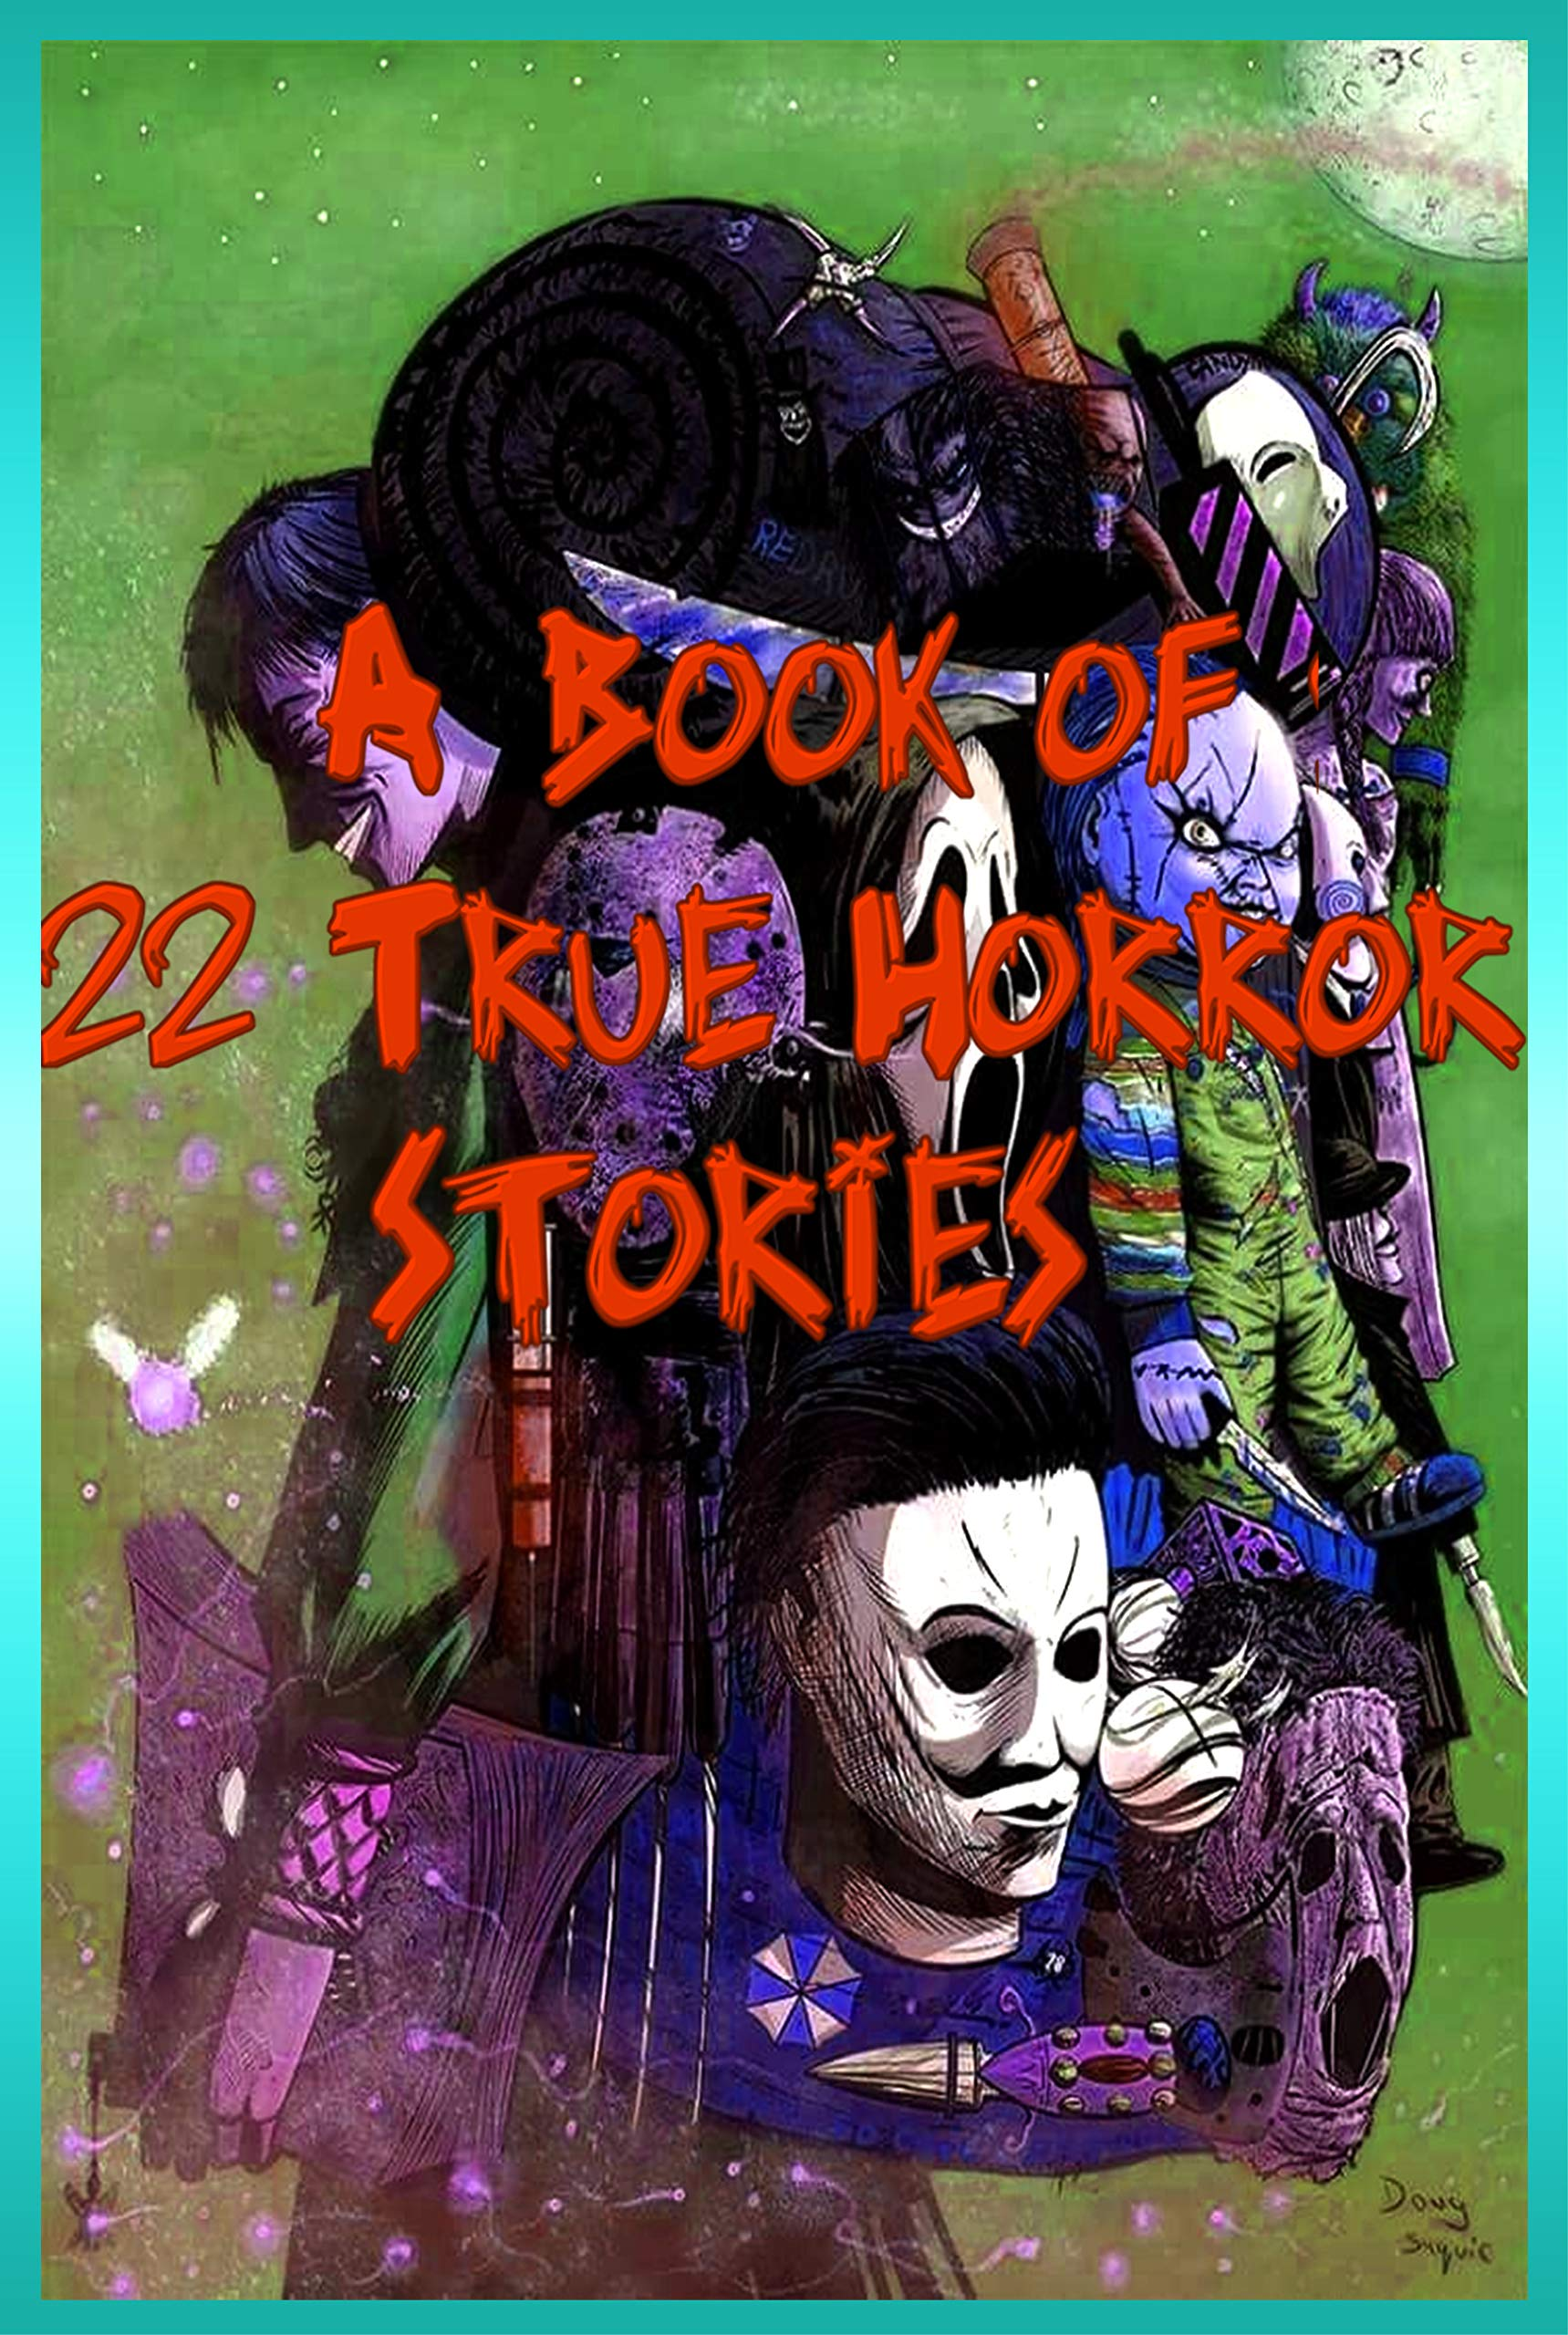 A Book of 22 True Horror Stories: Short Horror Stories Perfect for Kids and Parents, Scary Stories, Graphic Novels ,+ Finest Chills,+ Greatest Adventure, + Terror Darkness, Top Horor Tales etc.